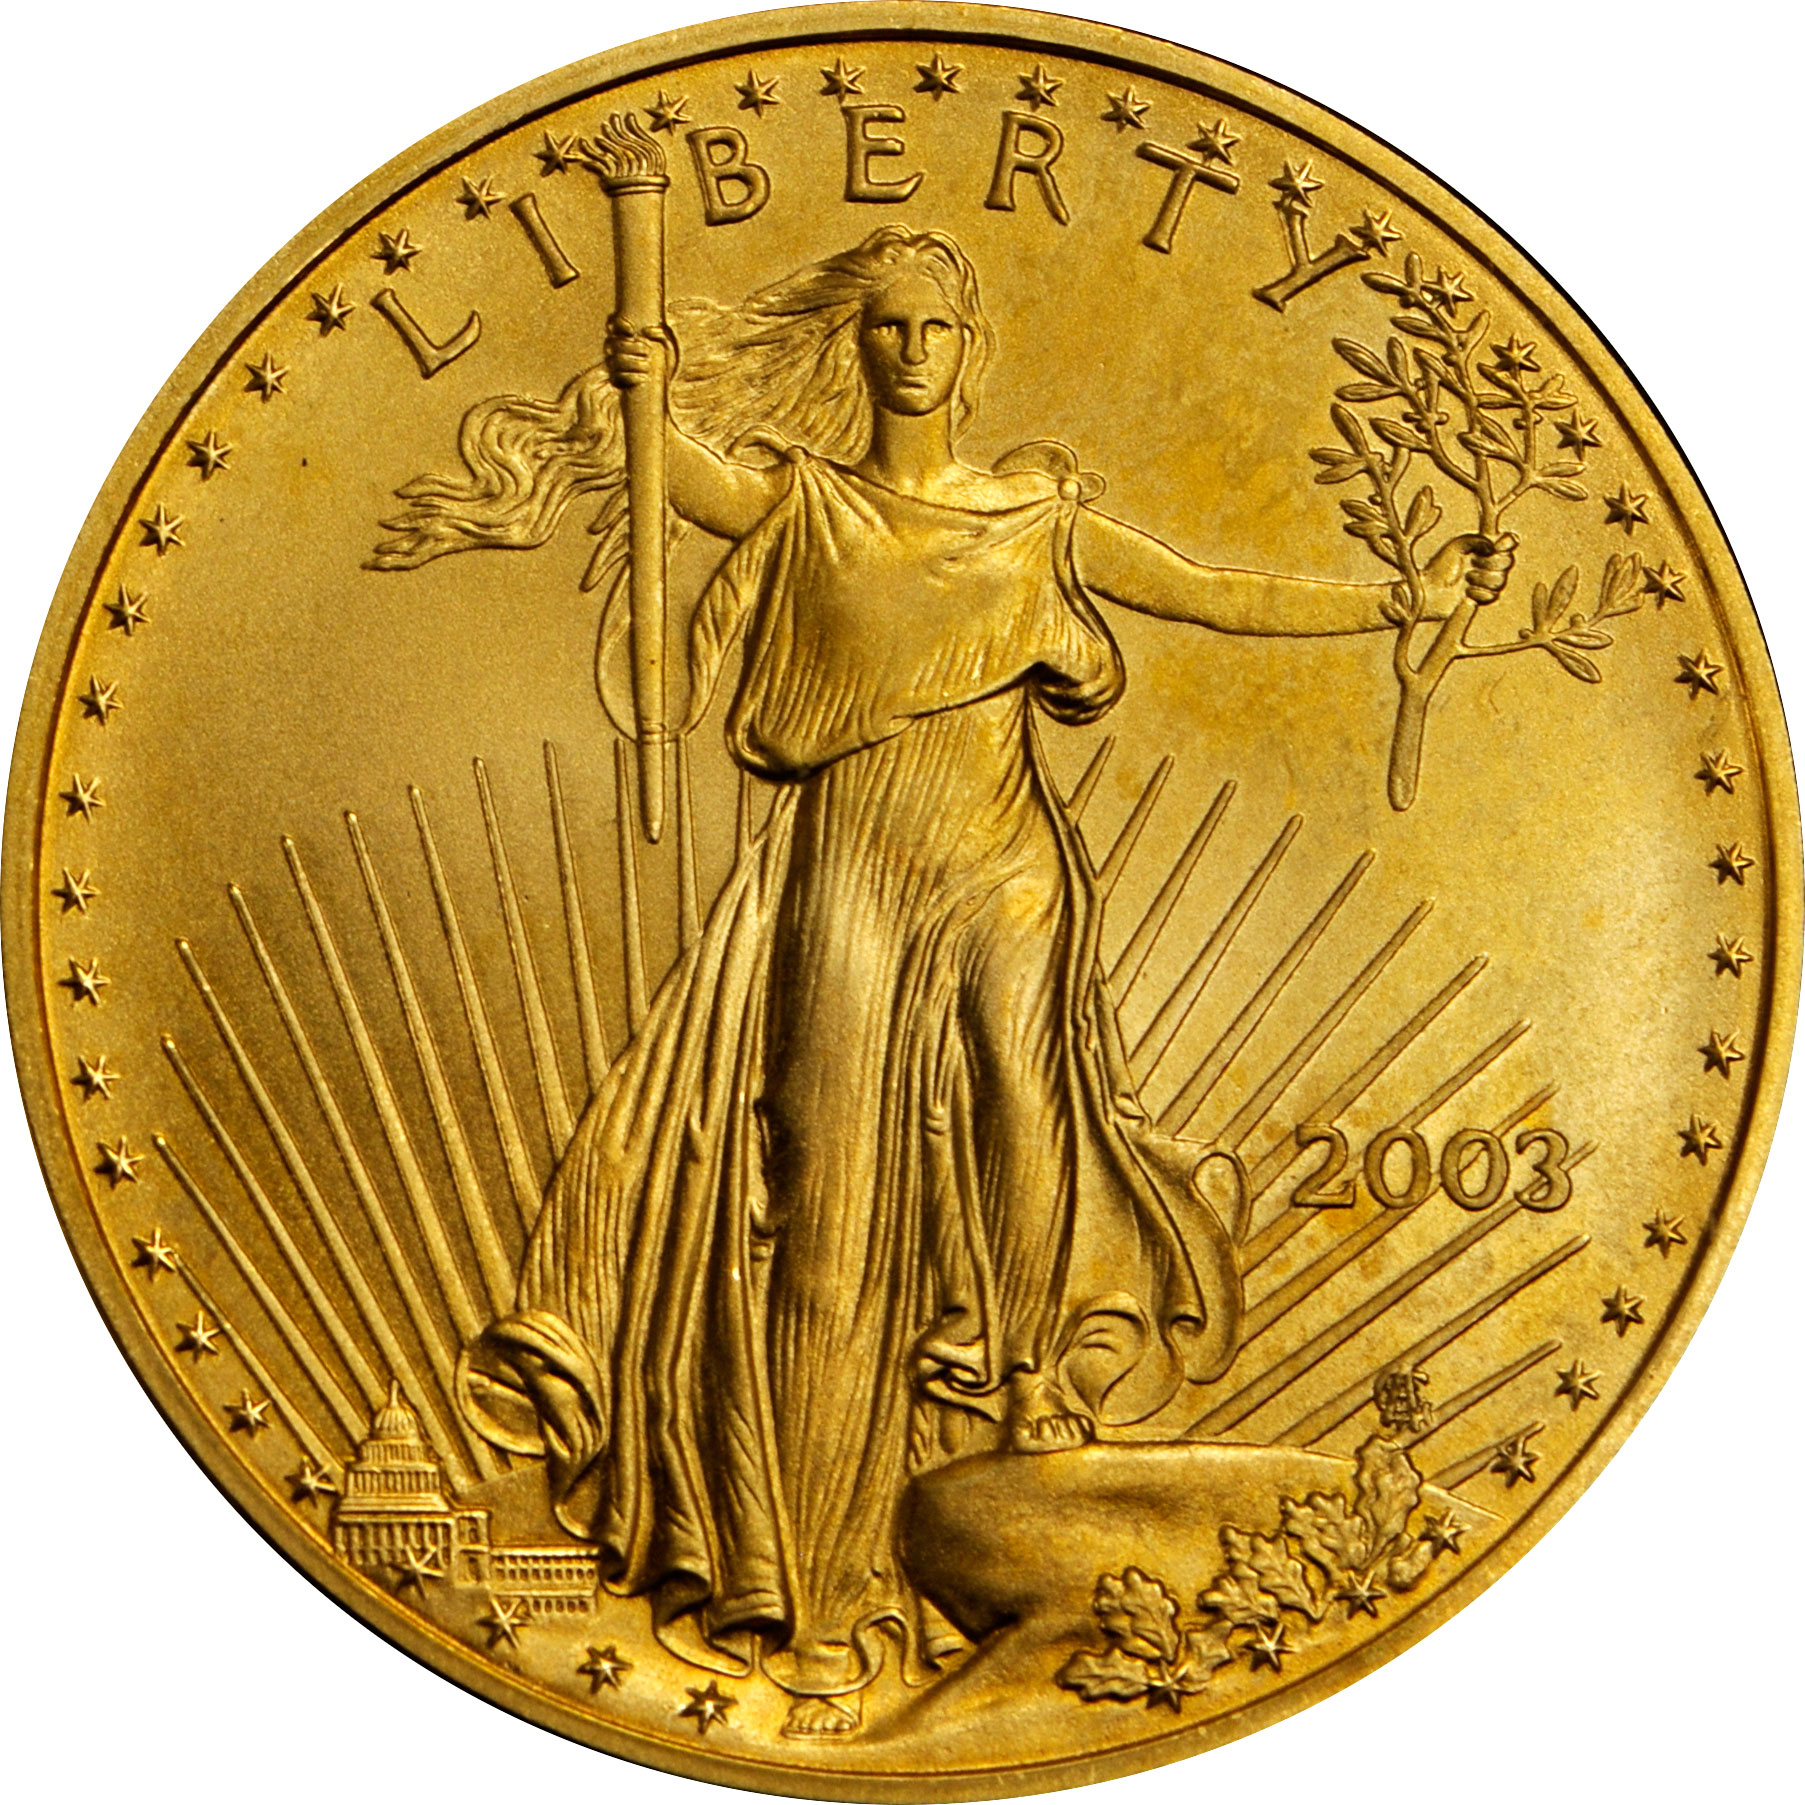 Value Of 2003 5 American Gold Eagle Coin